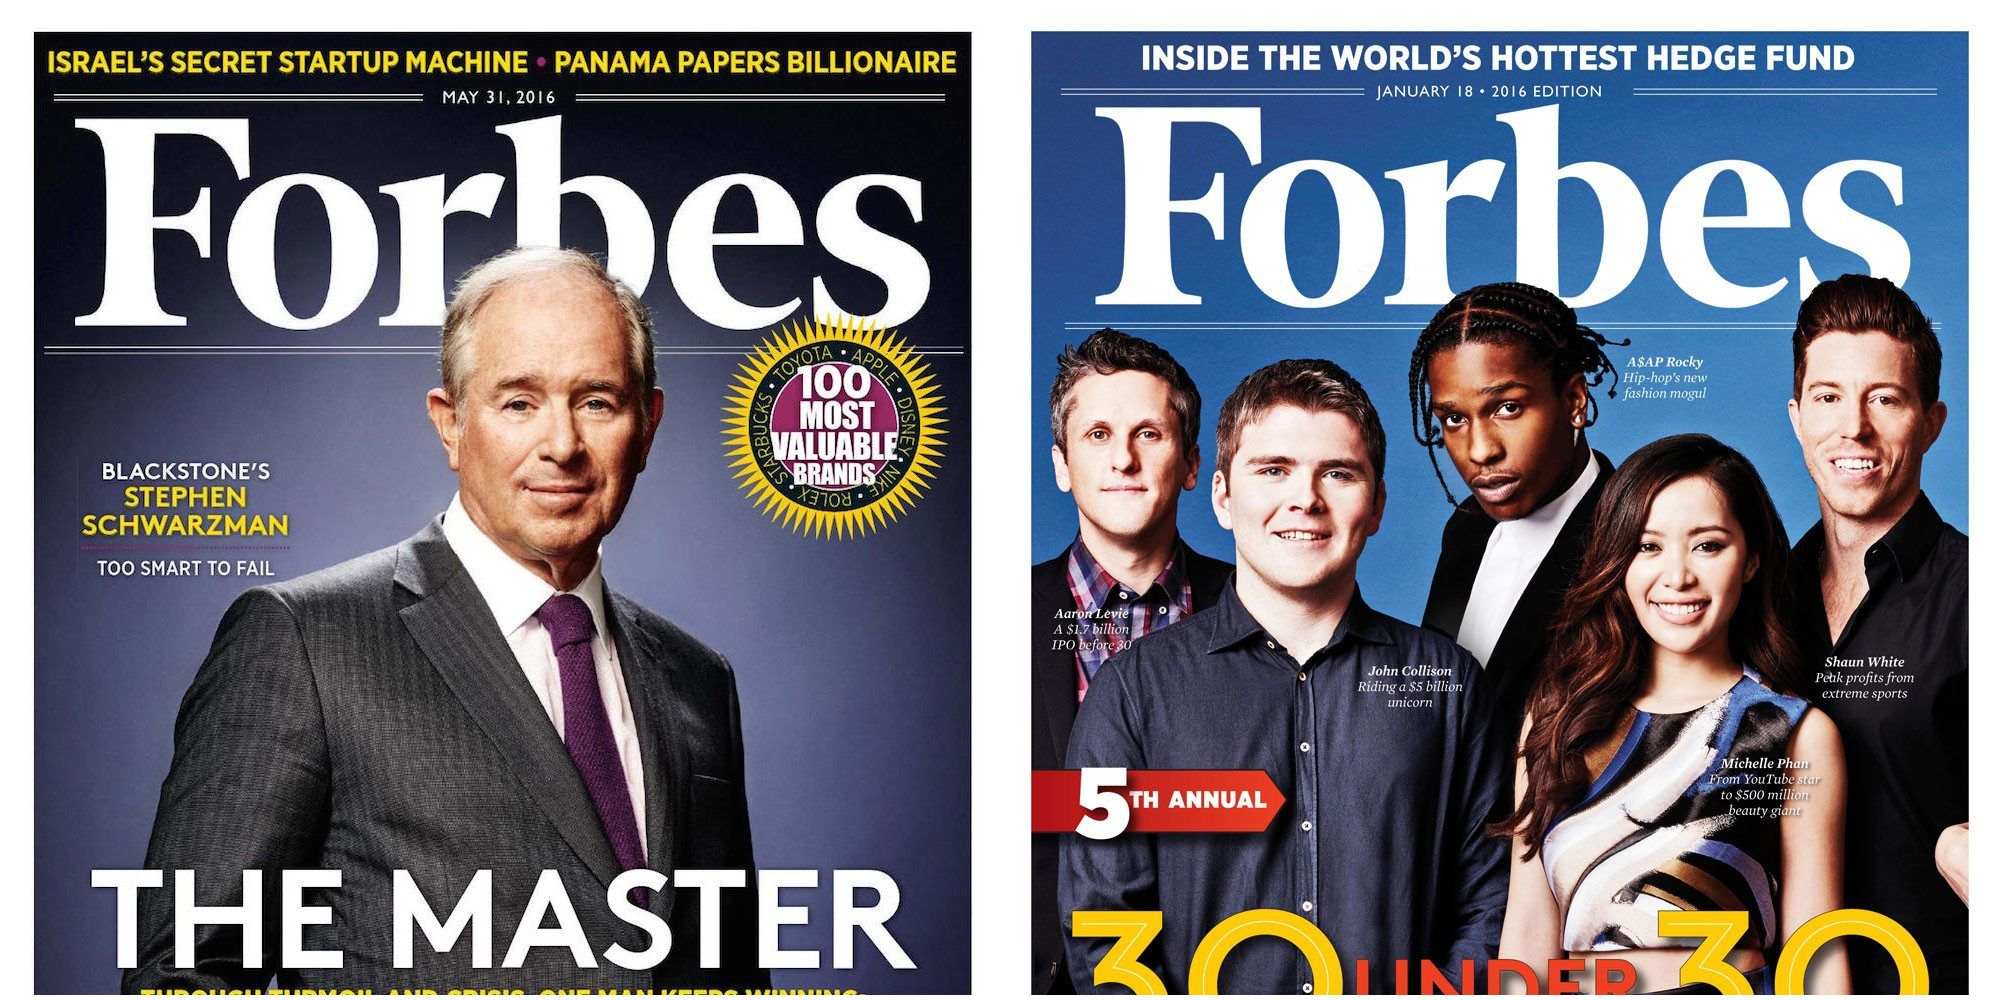 Forbes Magazine subscription or renewal for just $5 shipped Reg $20